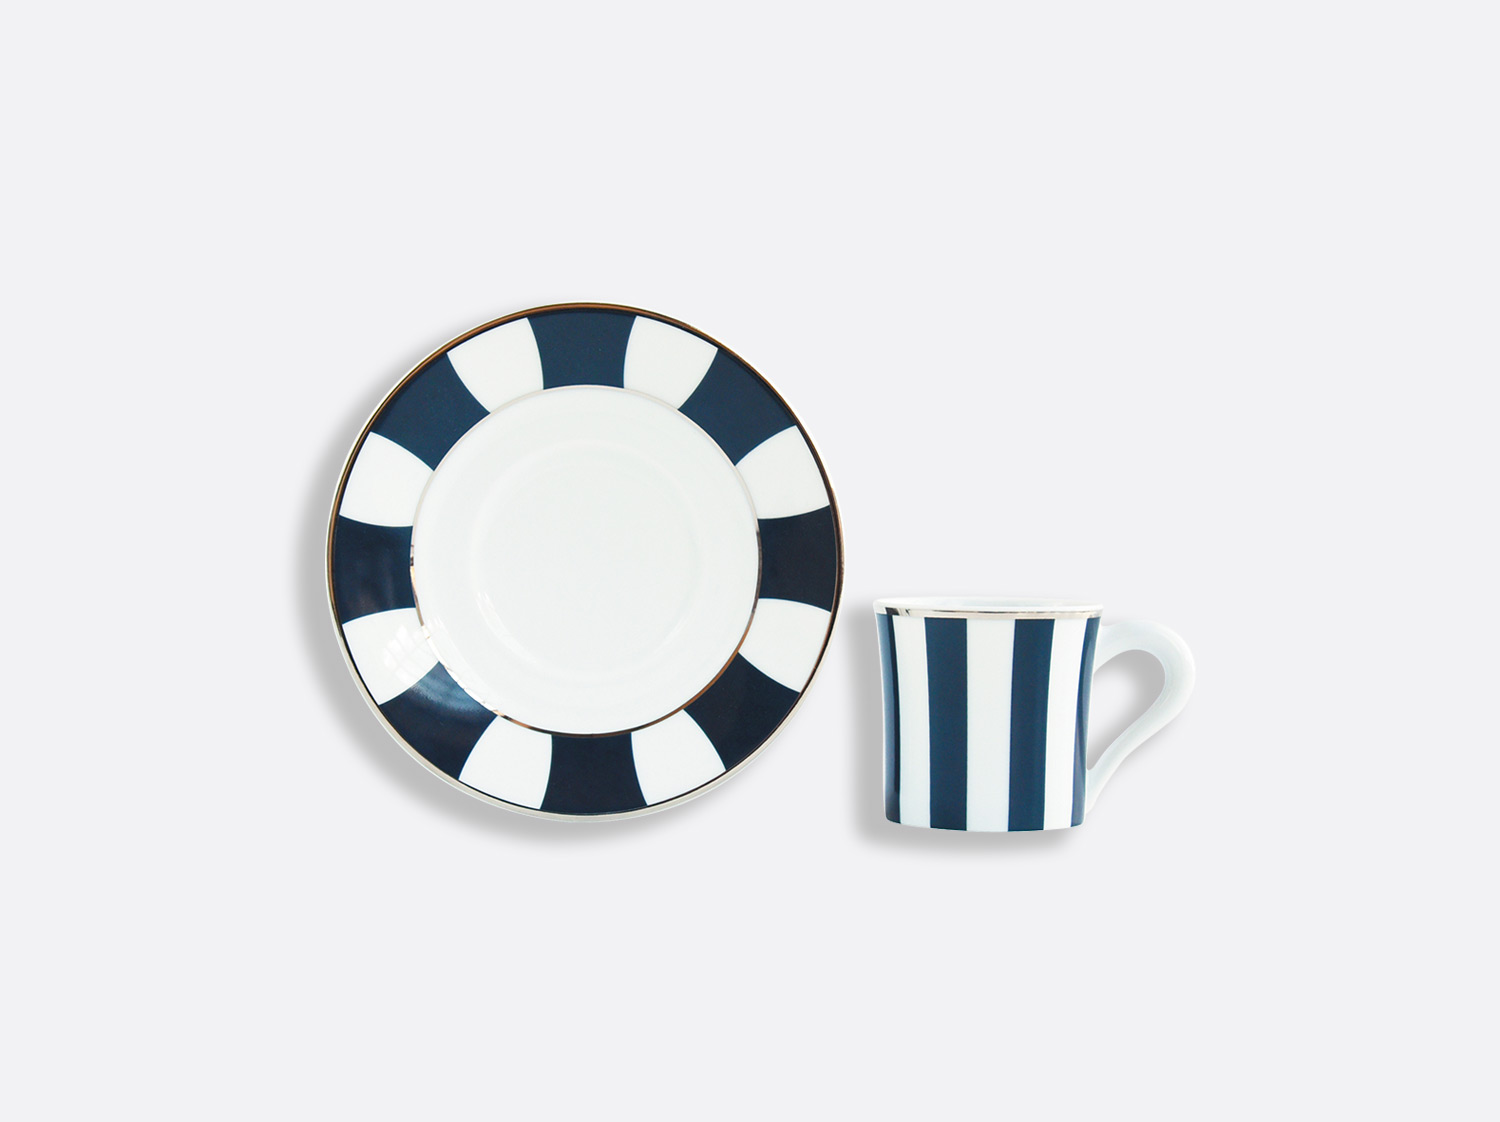 China Espresso cup and saucer gift box - 2.8 Oz - per unit of the collection Galerie Royale Bleu Nuit | Bernardaud